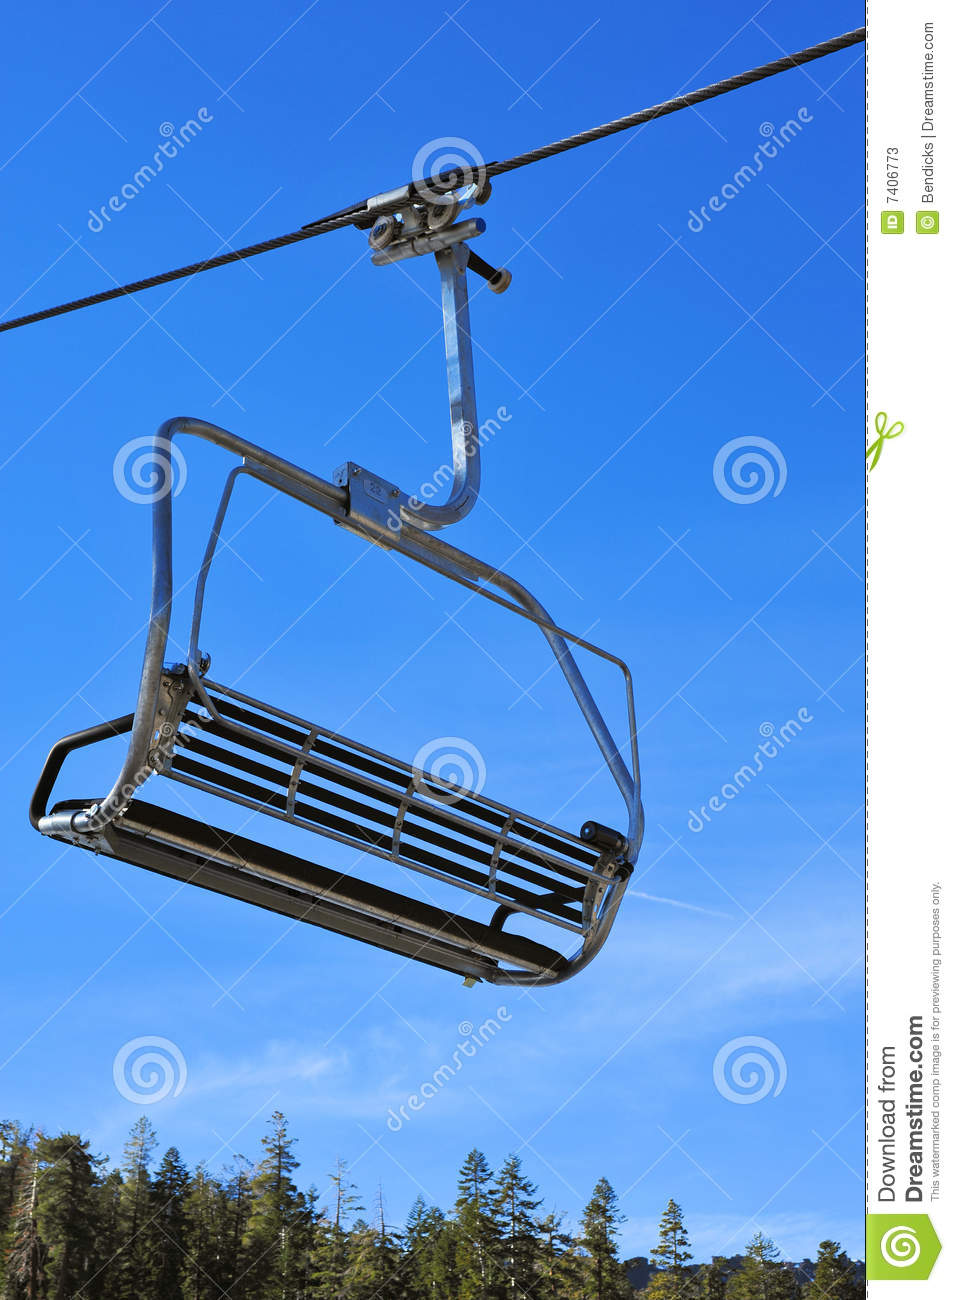 Closeup of a ski lift chair before the skiers arrive